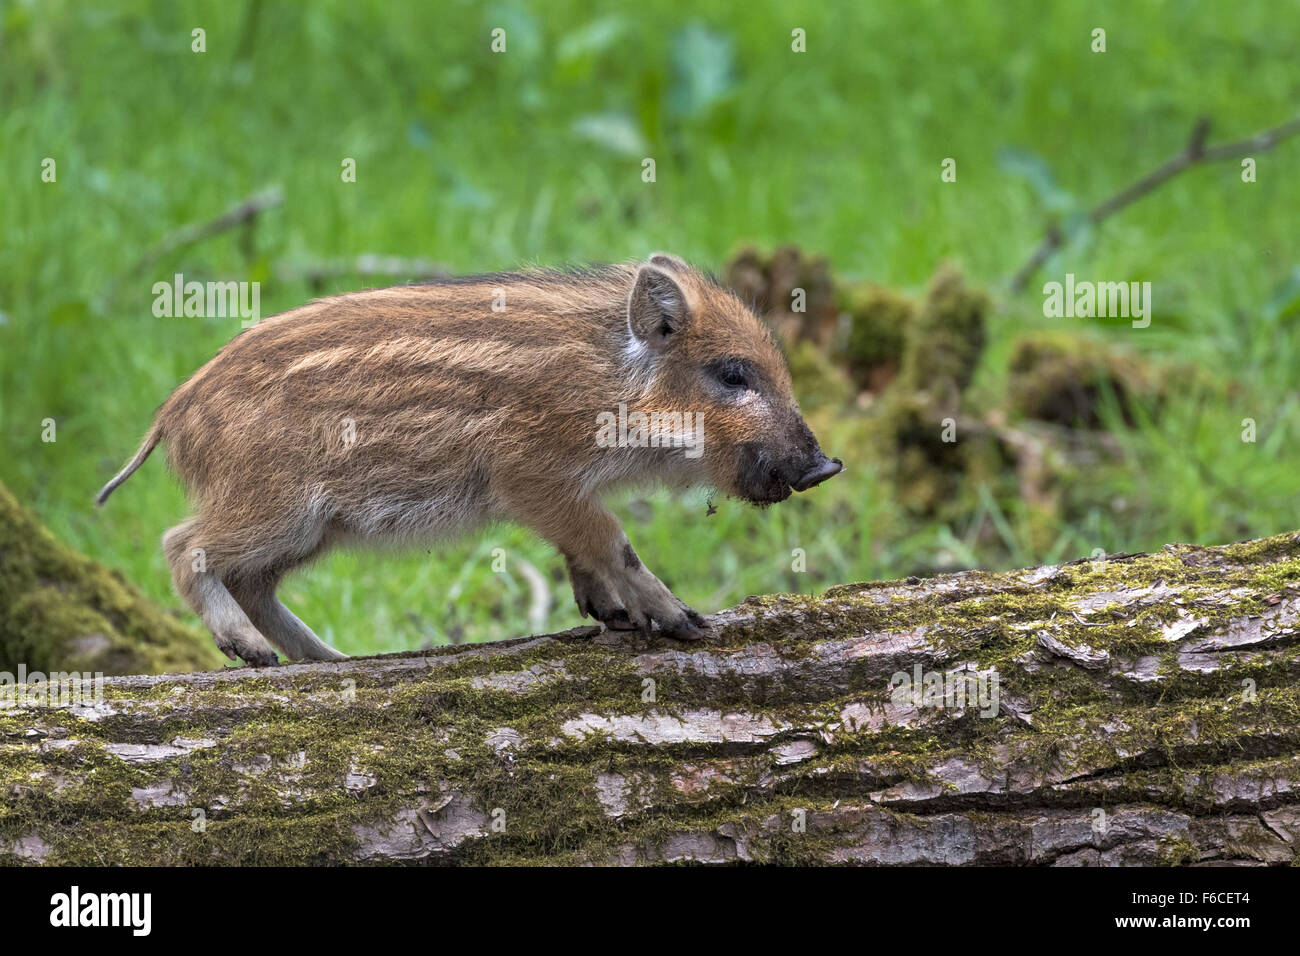 Young Wild boar on a trunk in a forest / Sus scrofa - Stock Image